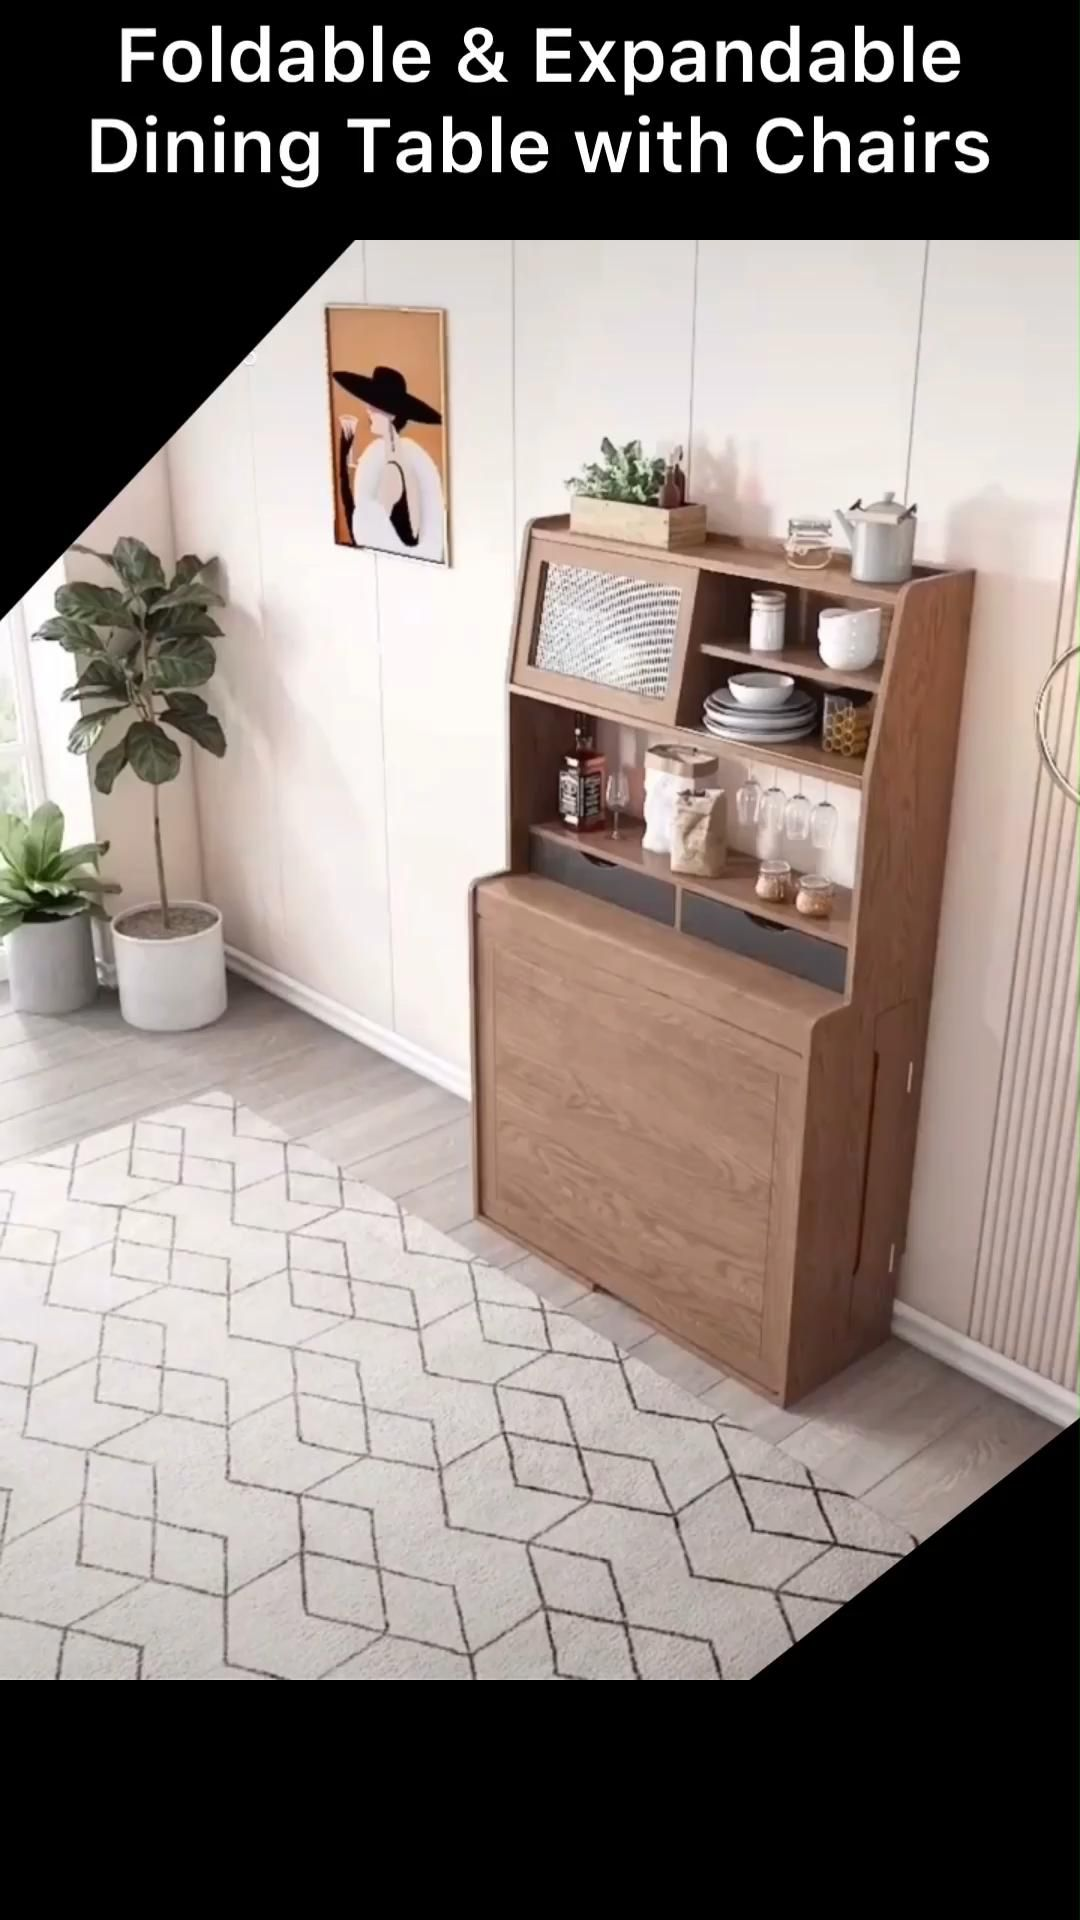 Foldable and Expandable Dining Table with Cabinet